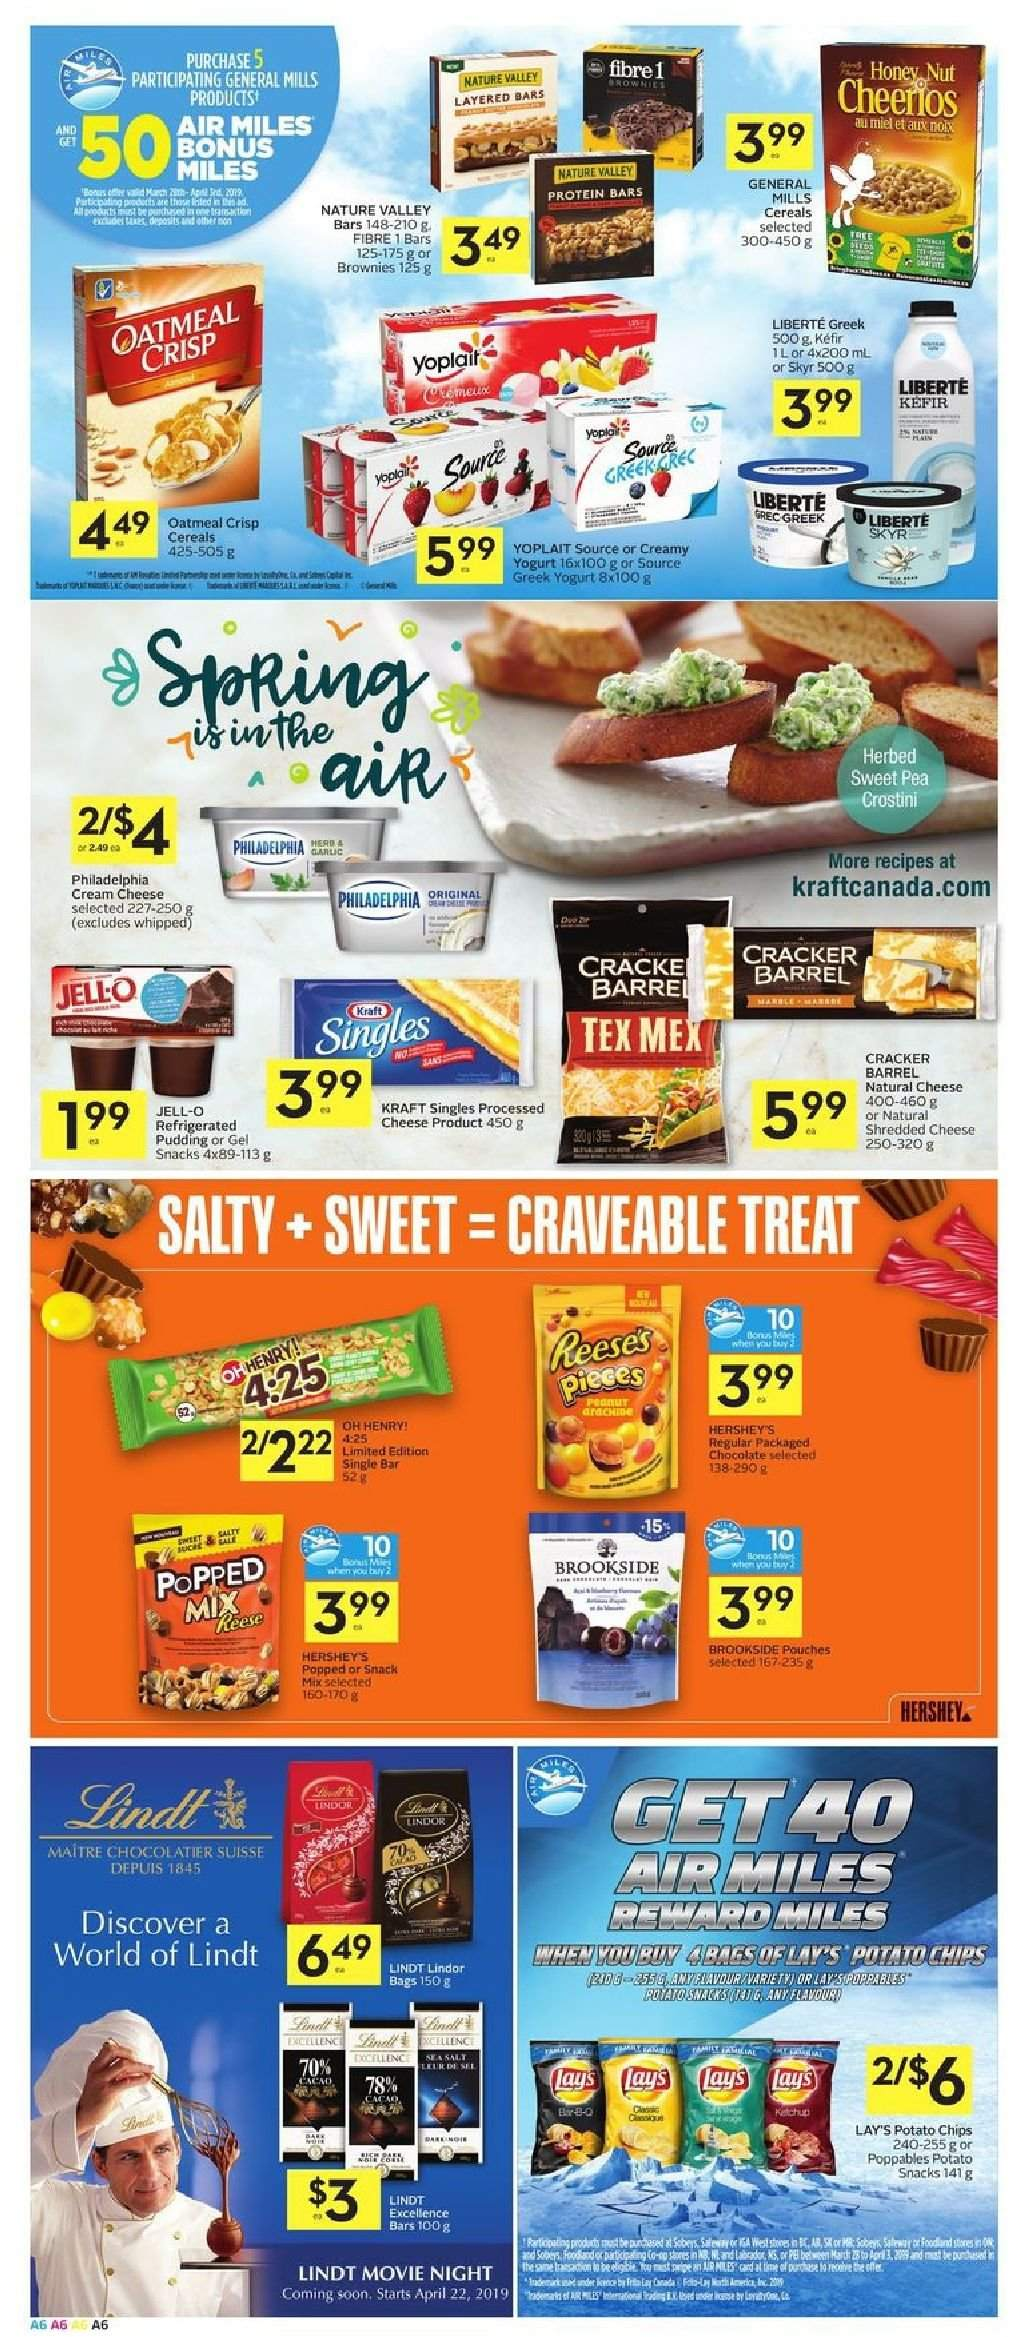 Foodland Flyer  - March 28, 2019 - April 03, 2019. Page 6.